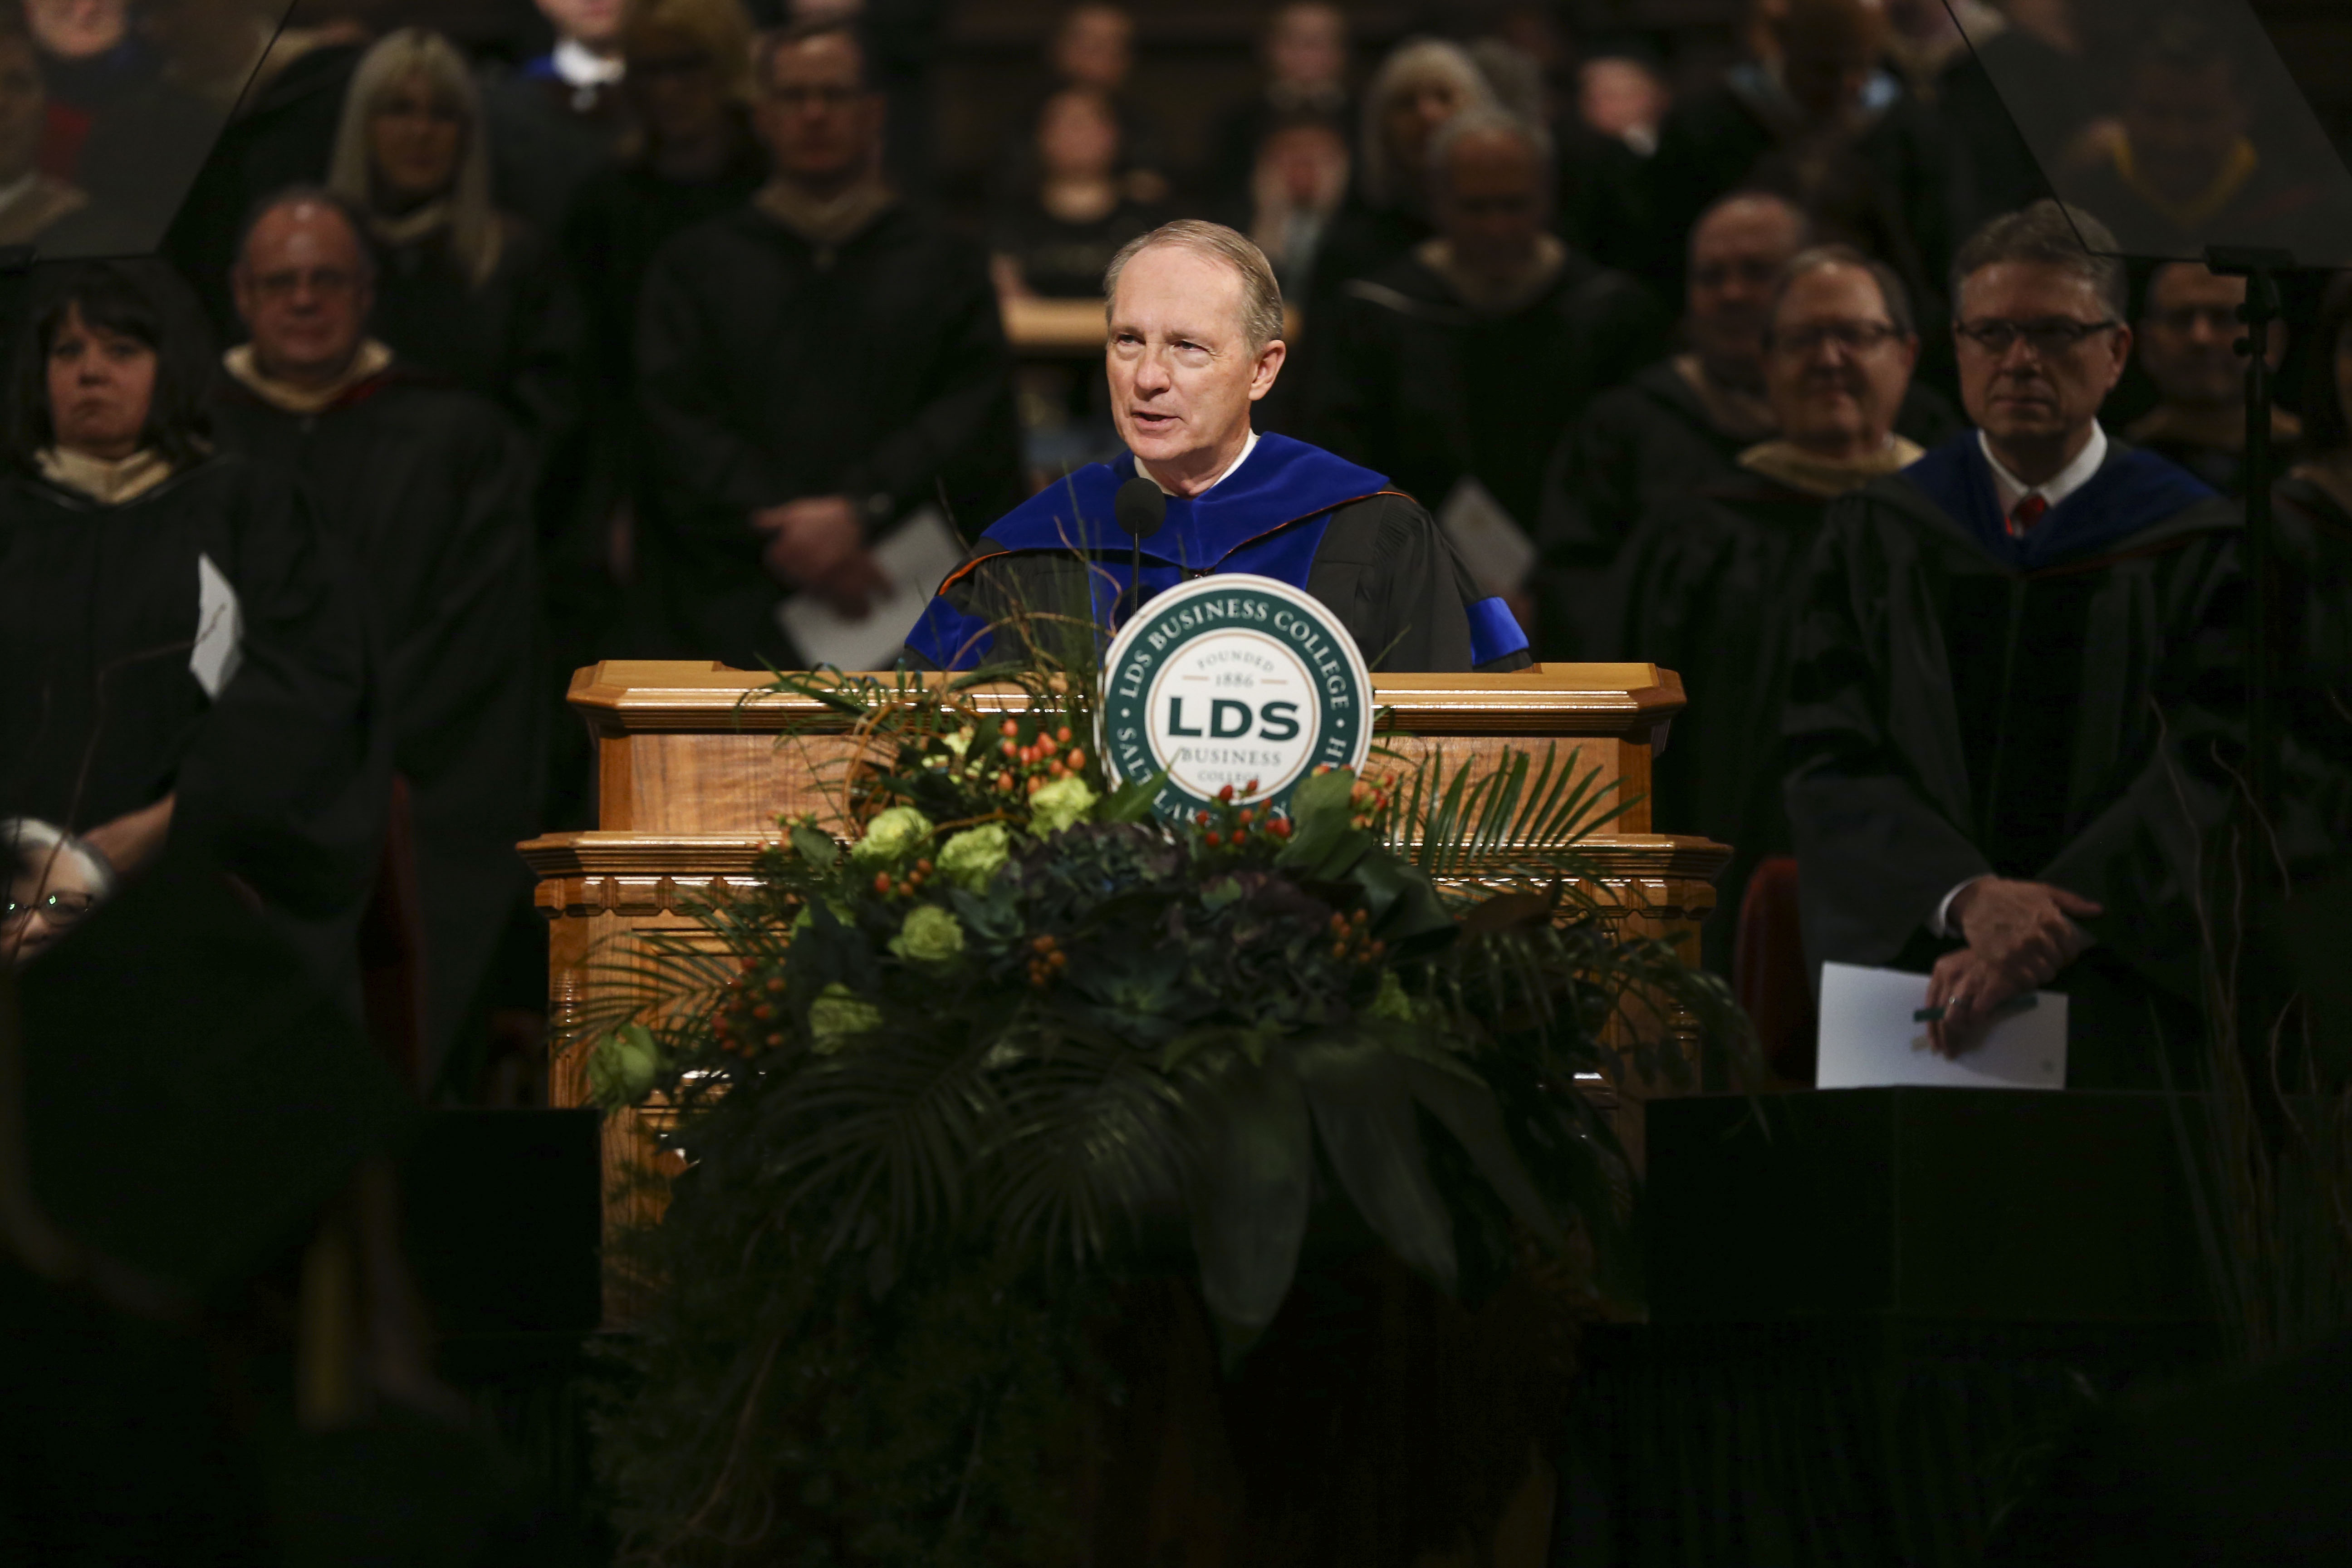 President Bruce C. Kusch speaks during the commencement ceremony for LDS Business College at the the Tabernacle at Temple Square in Salt Lake City on Friday, April 12, 2019.